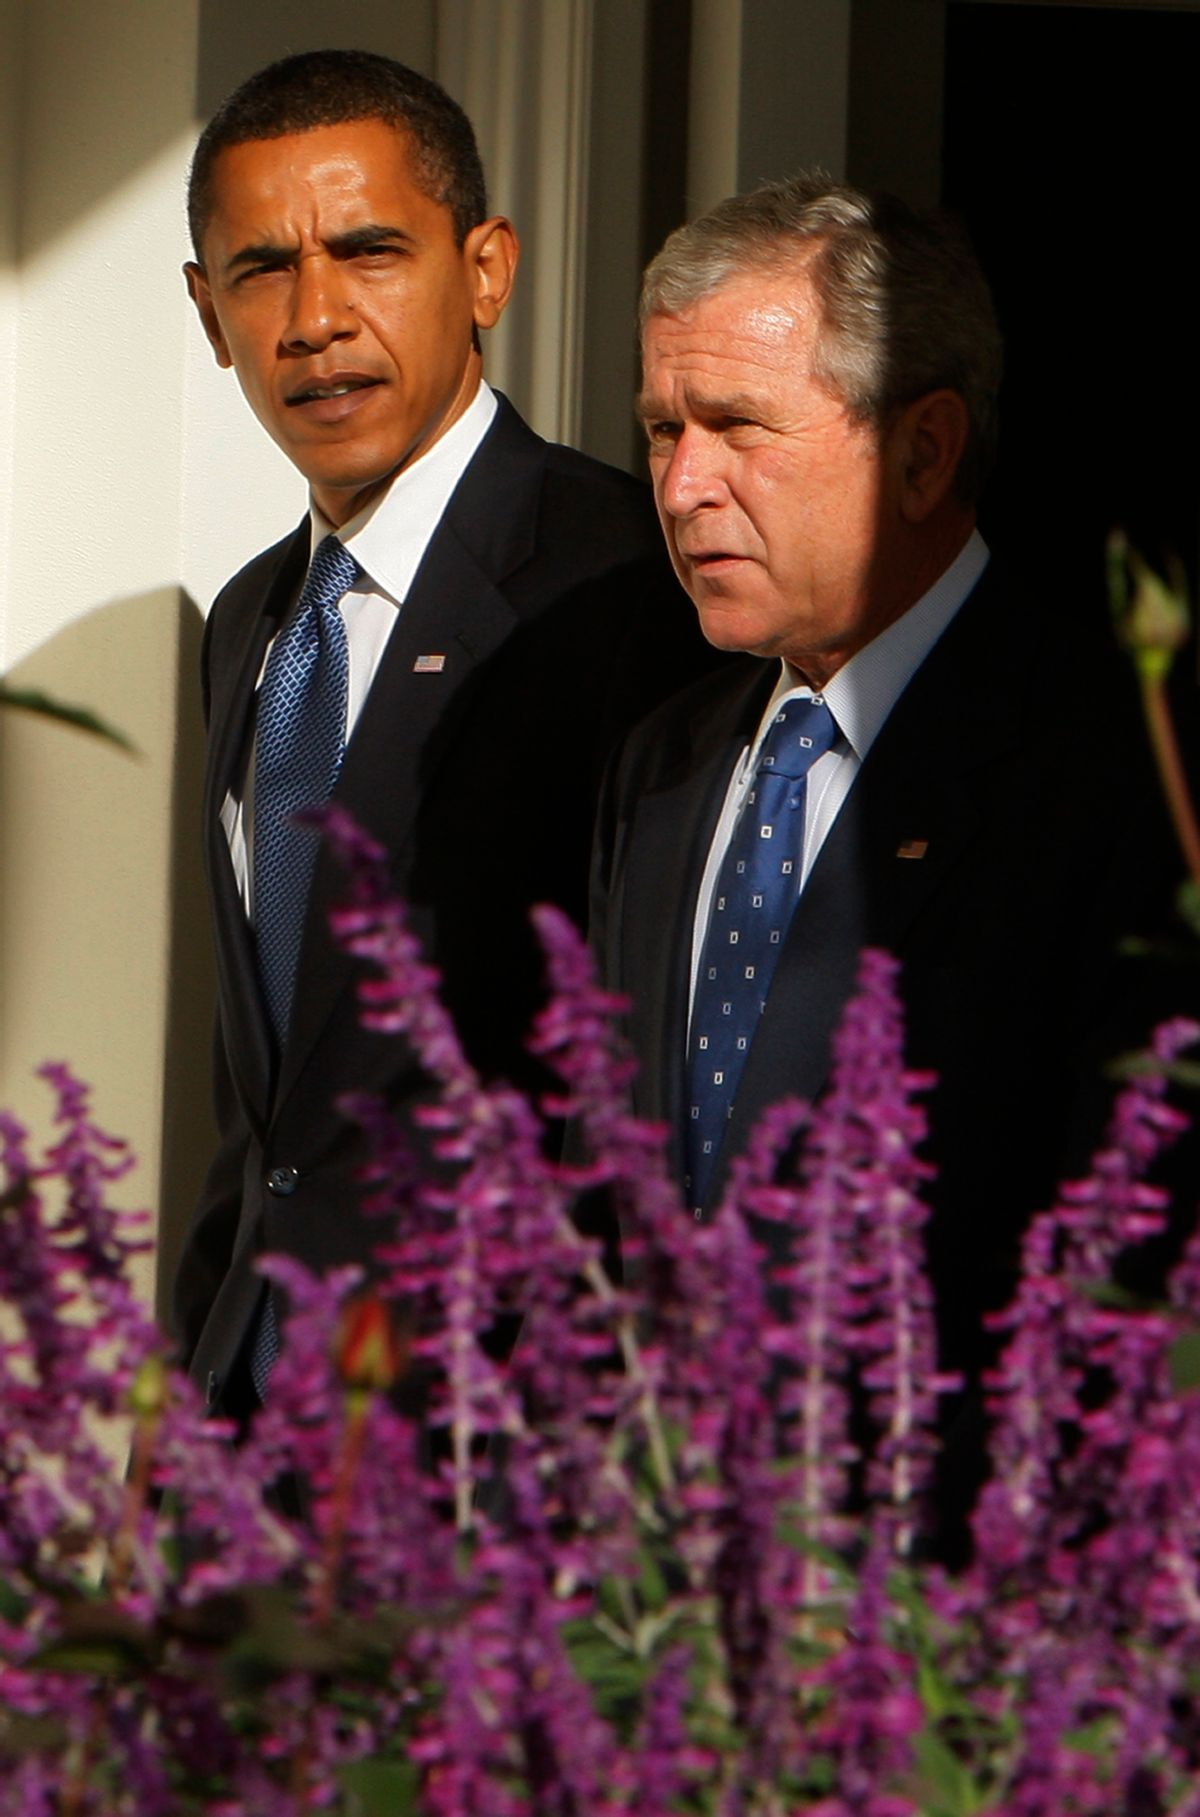 President Bush and President-elect Obama walk along the West Wing Colonnade of the White House in Washington, Monday, Nov. 10, 2008 prior to their meeting in the Oval Office. (AP Photo/Charles Dharapak) (Associated Press)